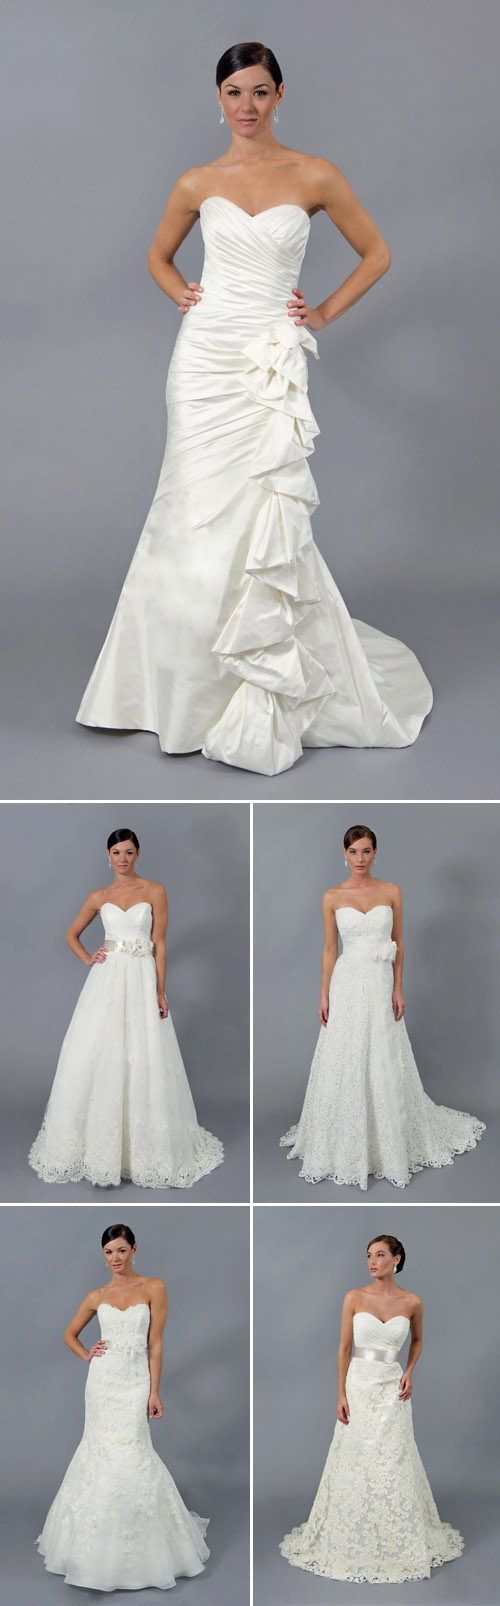 Modern-trousseau-wedding-dress-collection-spring-2012-2